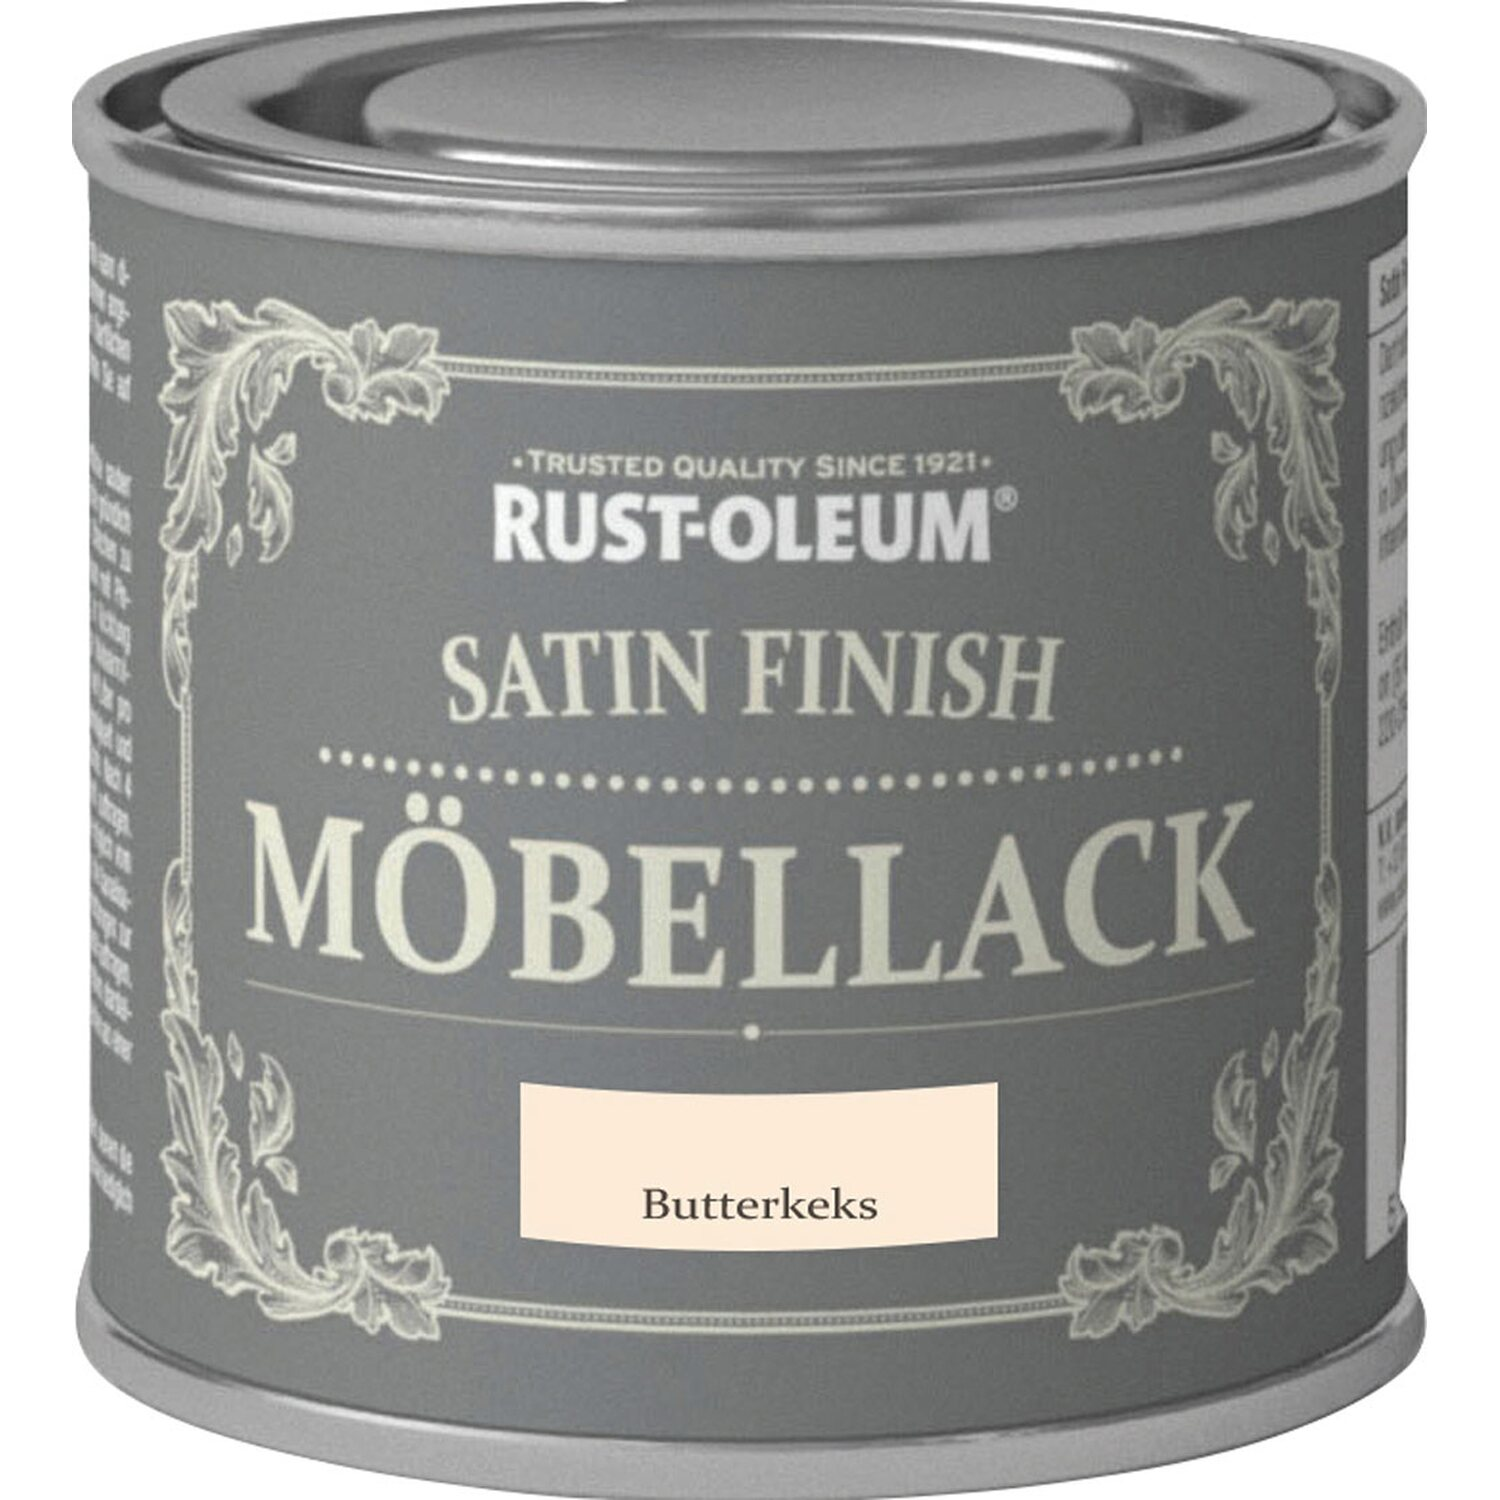 rust oleum kreidefarbe m bellack satin finish butterkeks seidengl nzend 125 ml kaufen bei obi. Black Bedroom Furniture Sets. Home Design Ideas